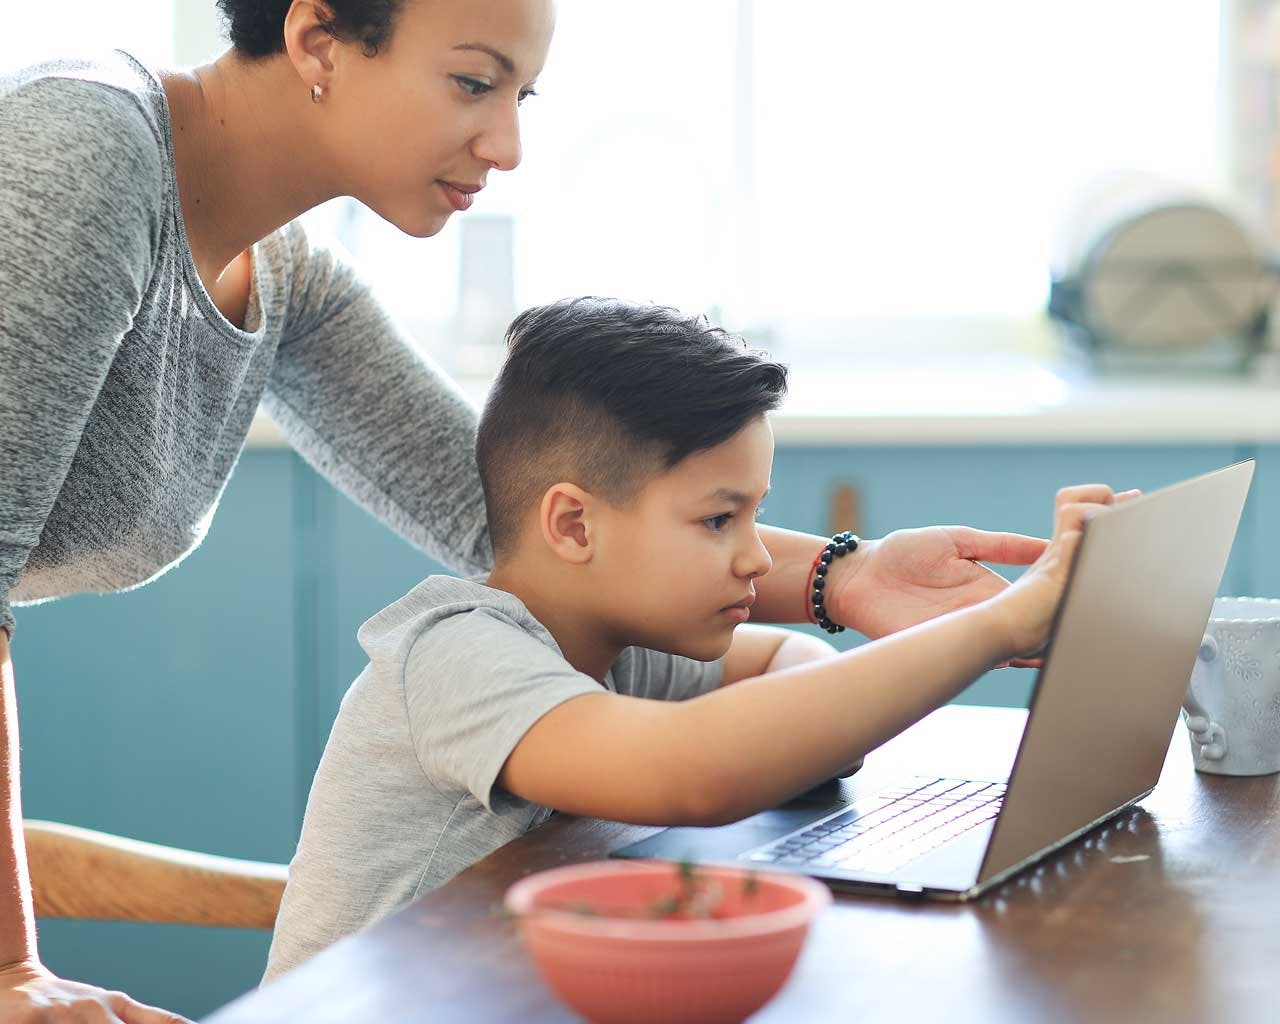 Online Schooling Resources You Should Tap To Prevent Mom Burnout